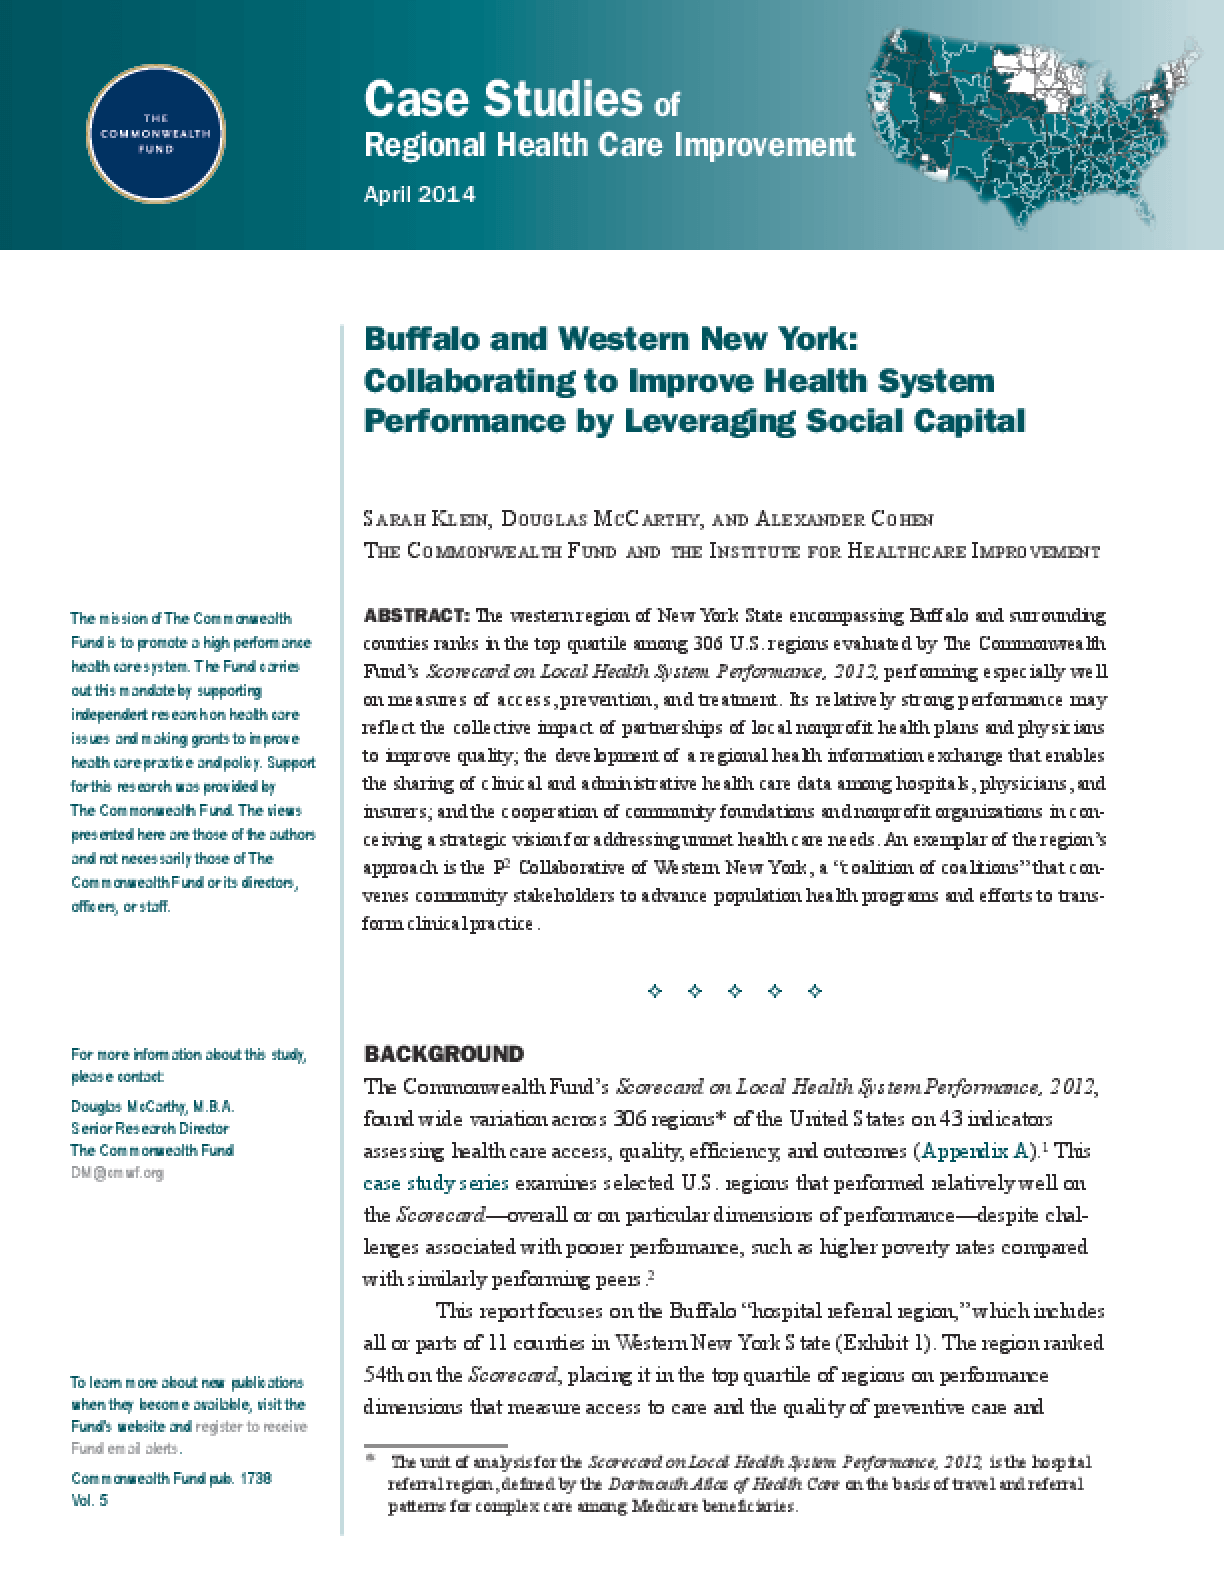 Buffalo and Western New York: Leveraging Social Capital to Collaboratively Improve Health System Performance